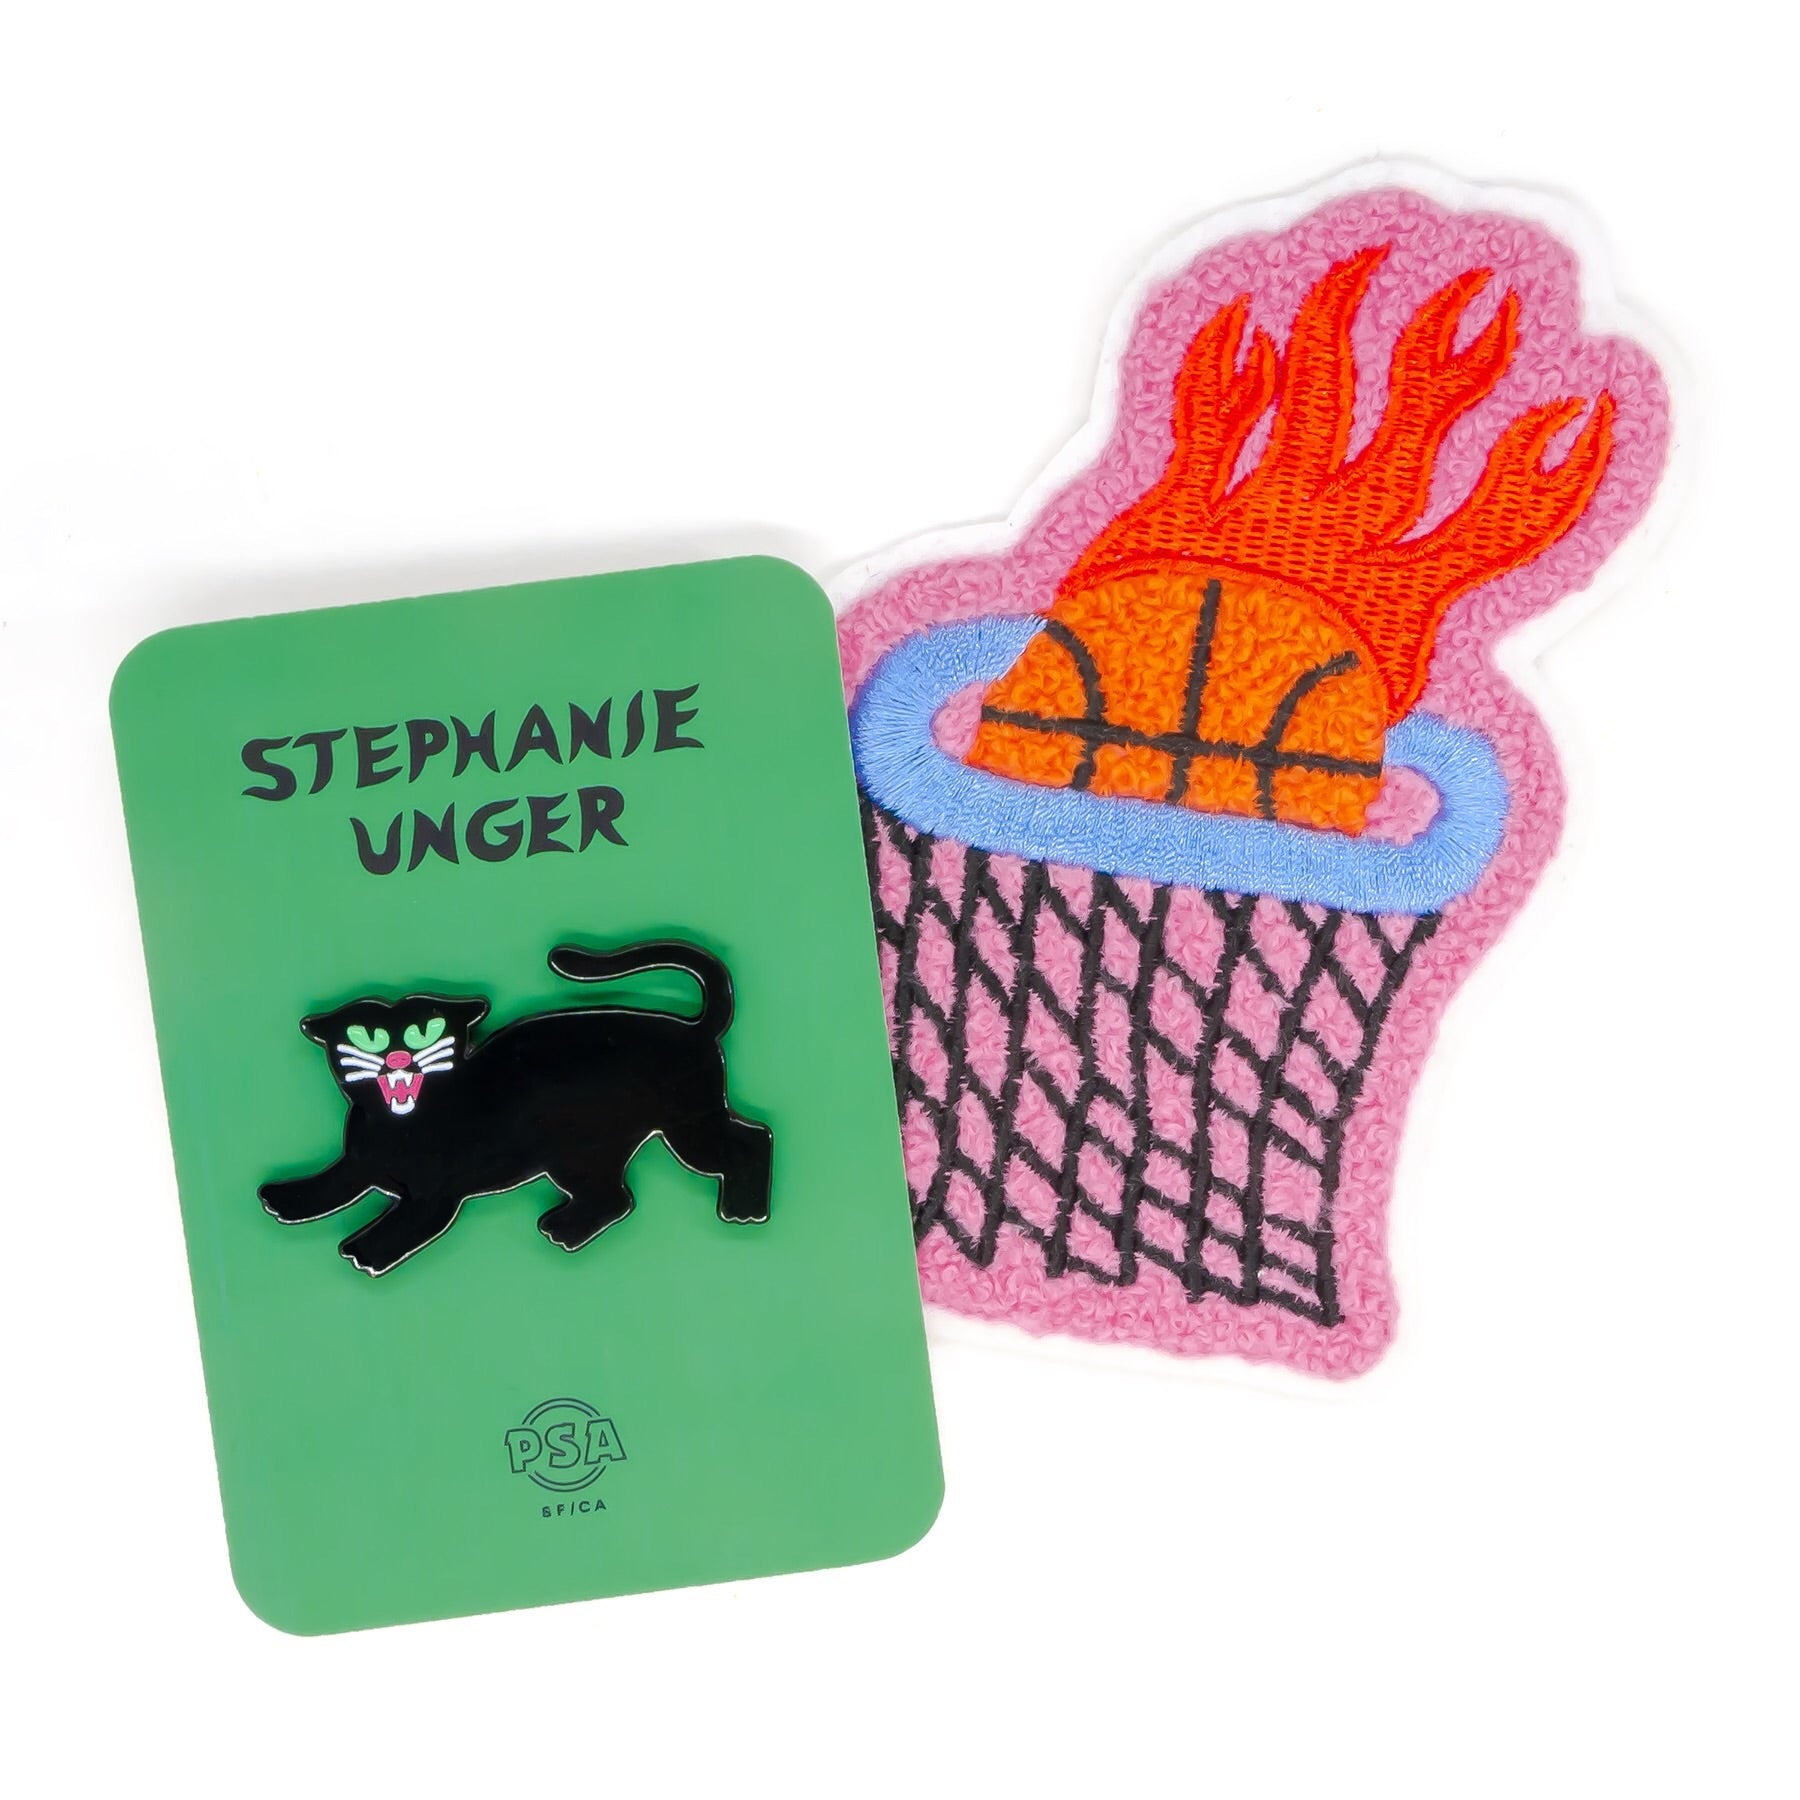 Stephanie Unger enamel pin